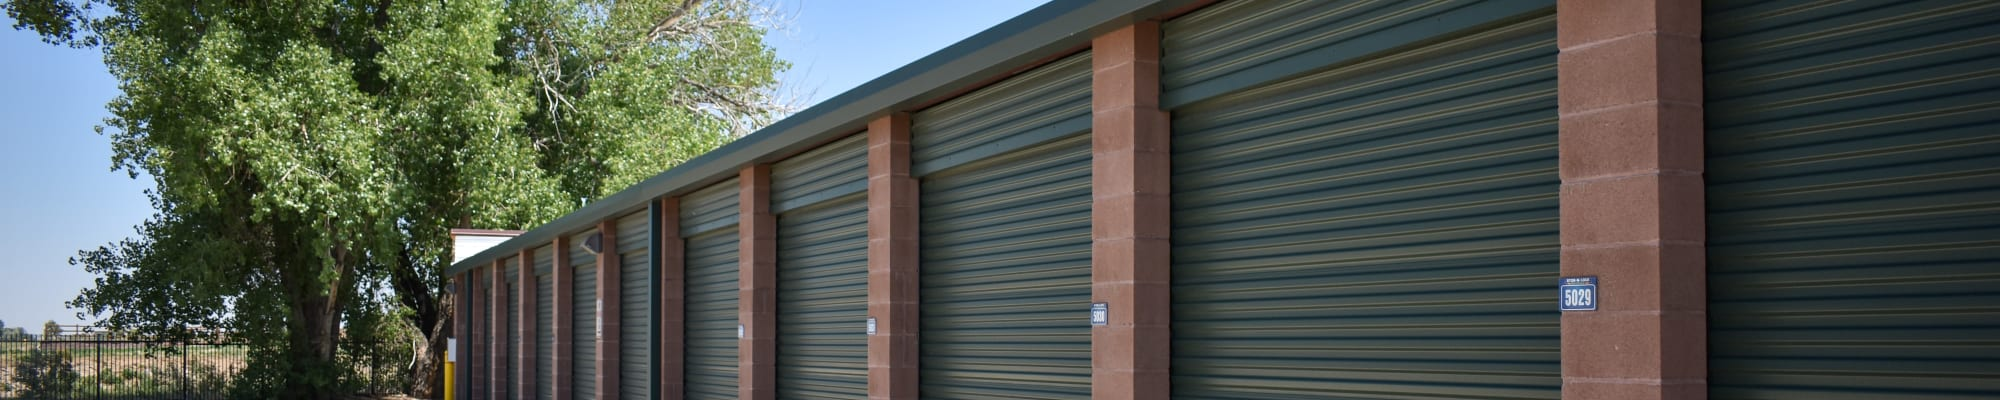 Features at STOR-N-LOCK Self Storage in Henderson, Colorado